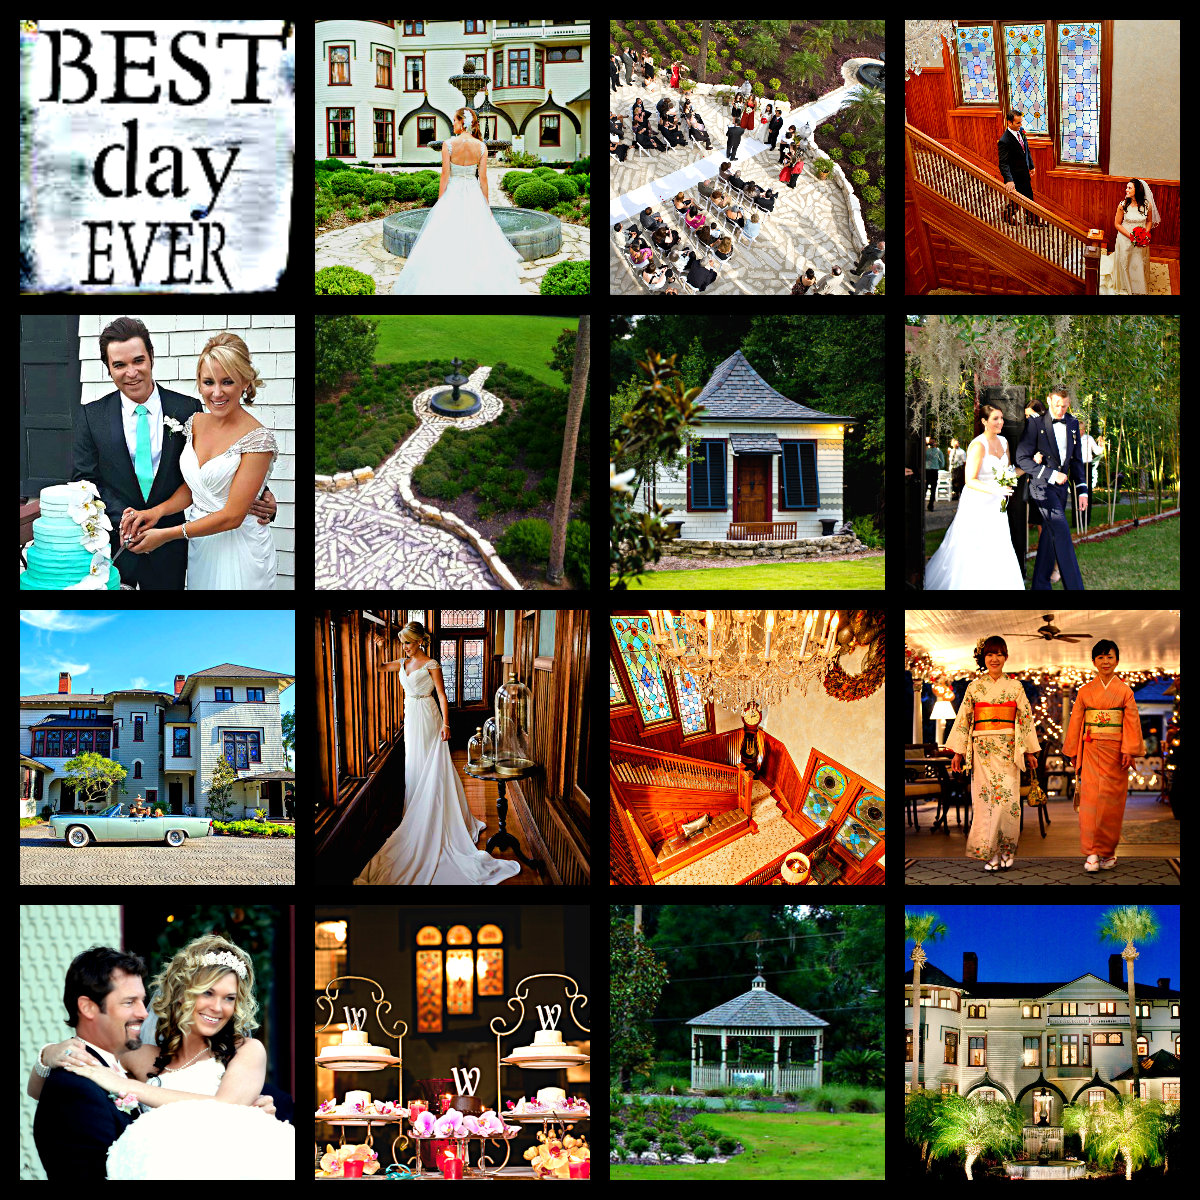 Wedding collage 2-a-b.jpg